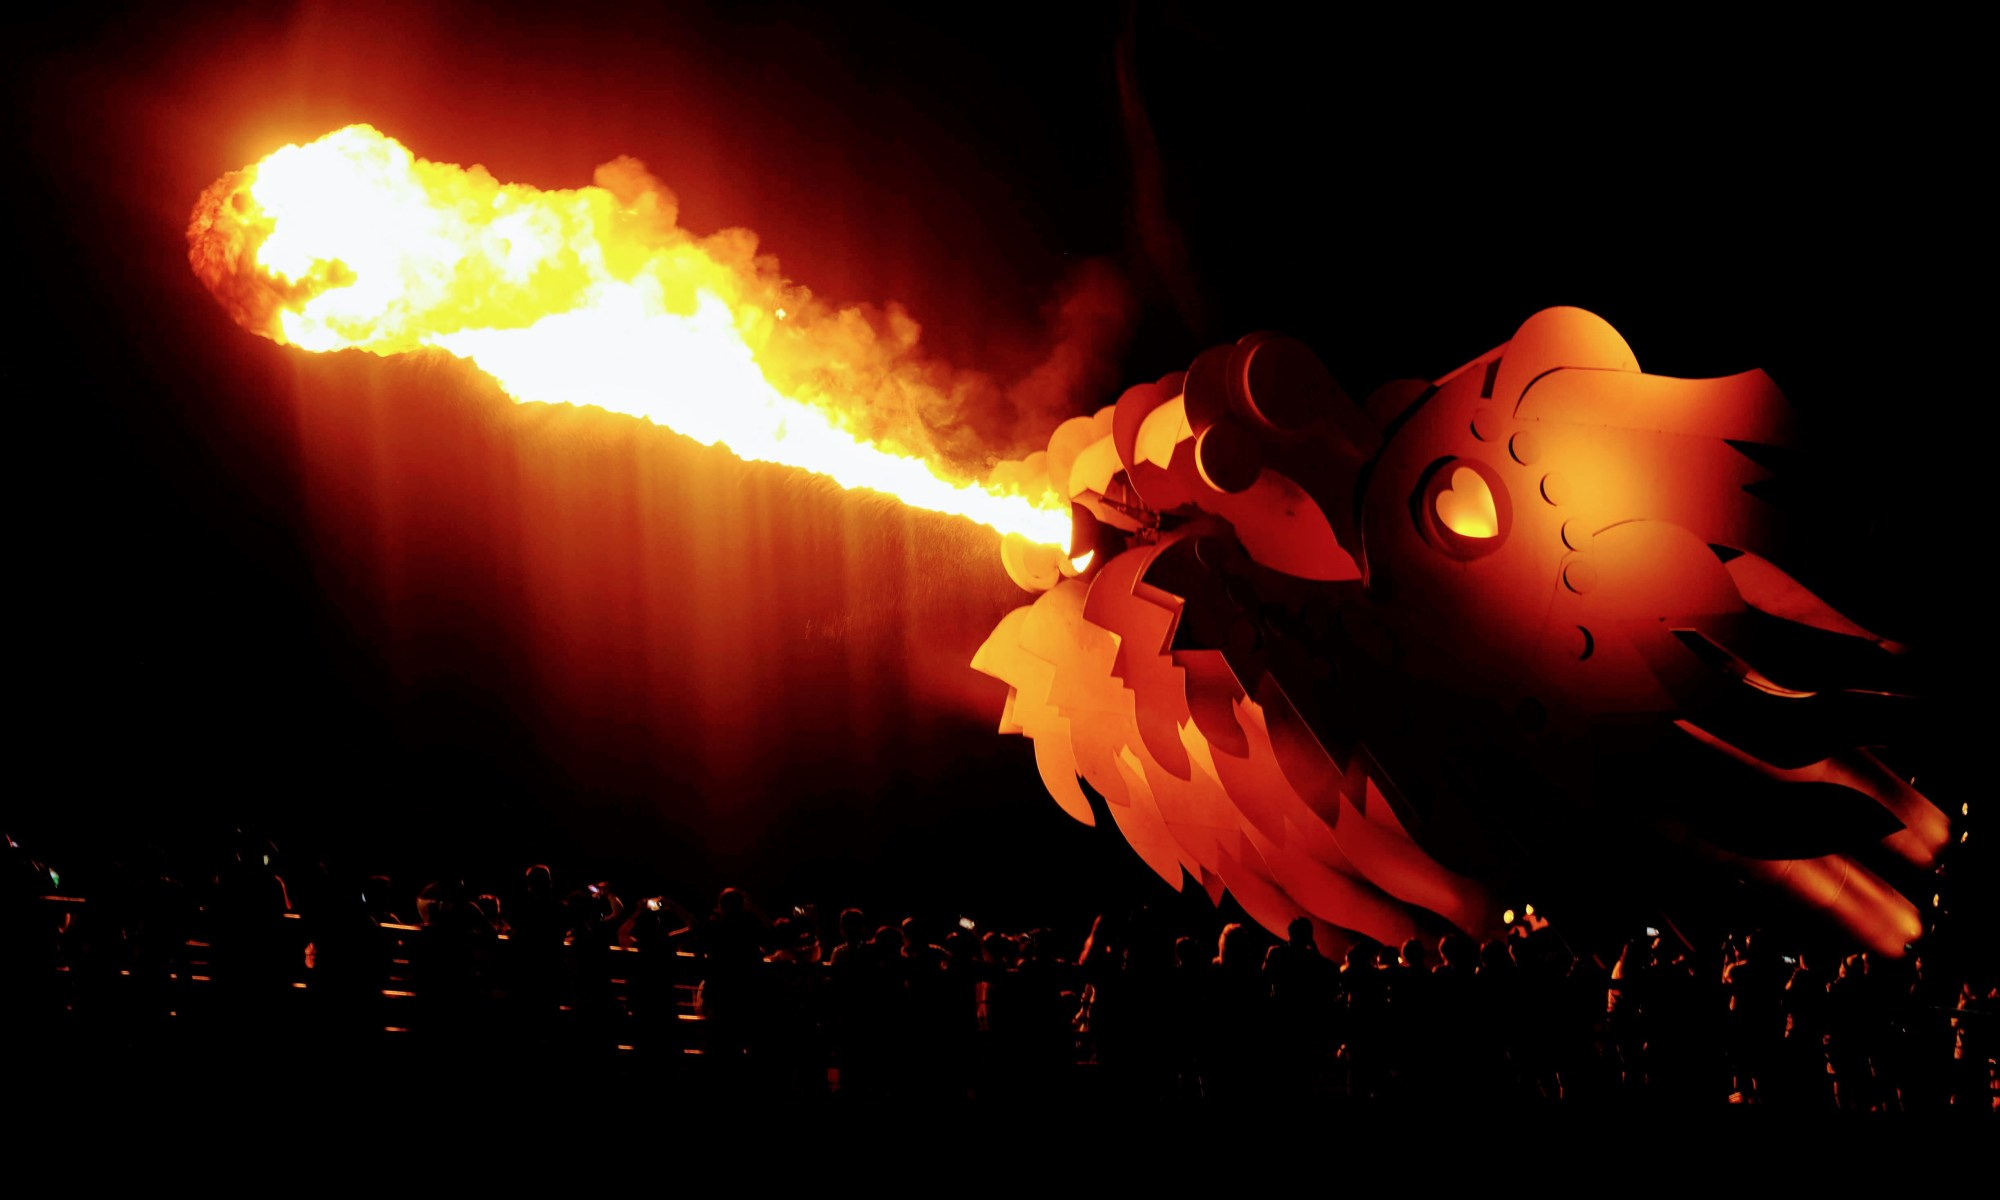 Dragon Bridge breathing fire, Da Nang, Vietnam